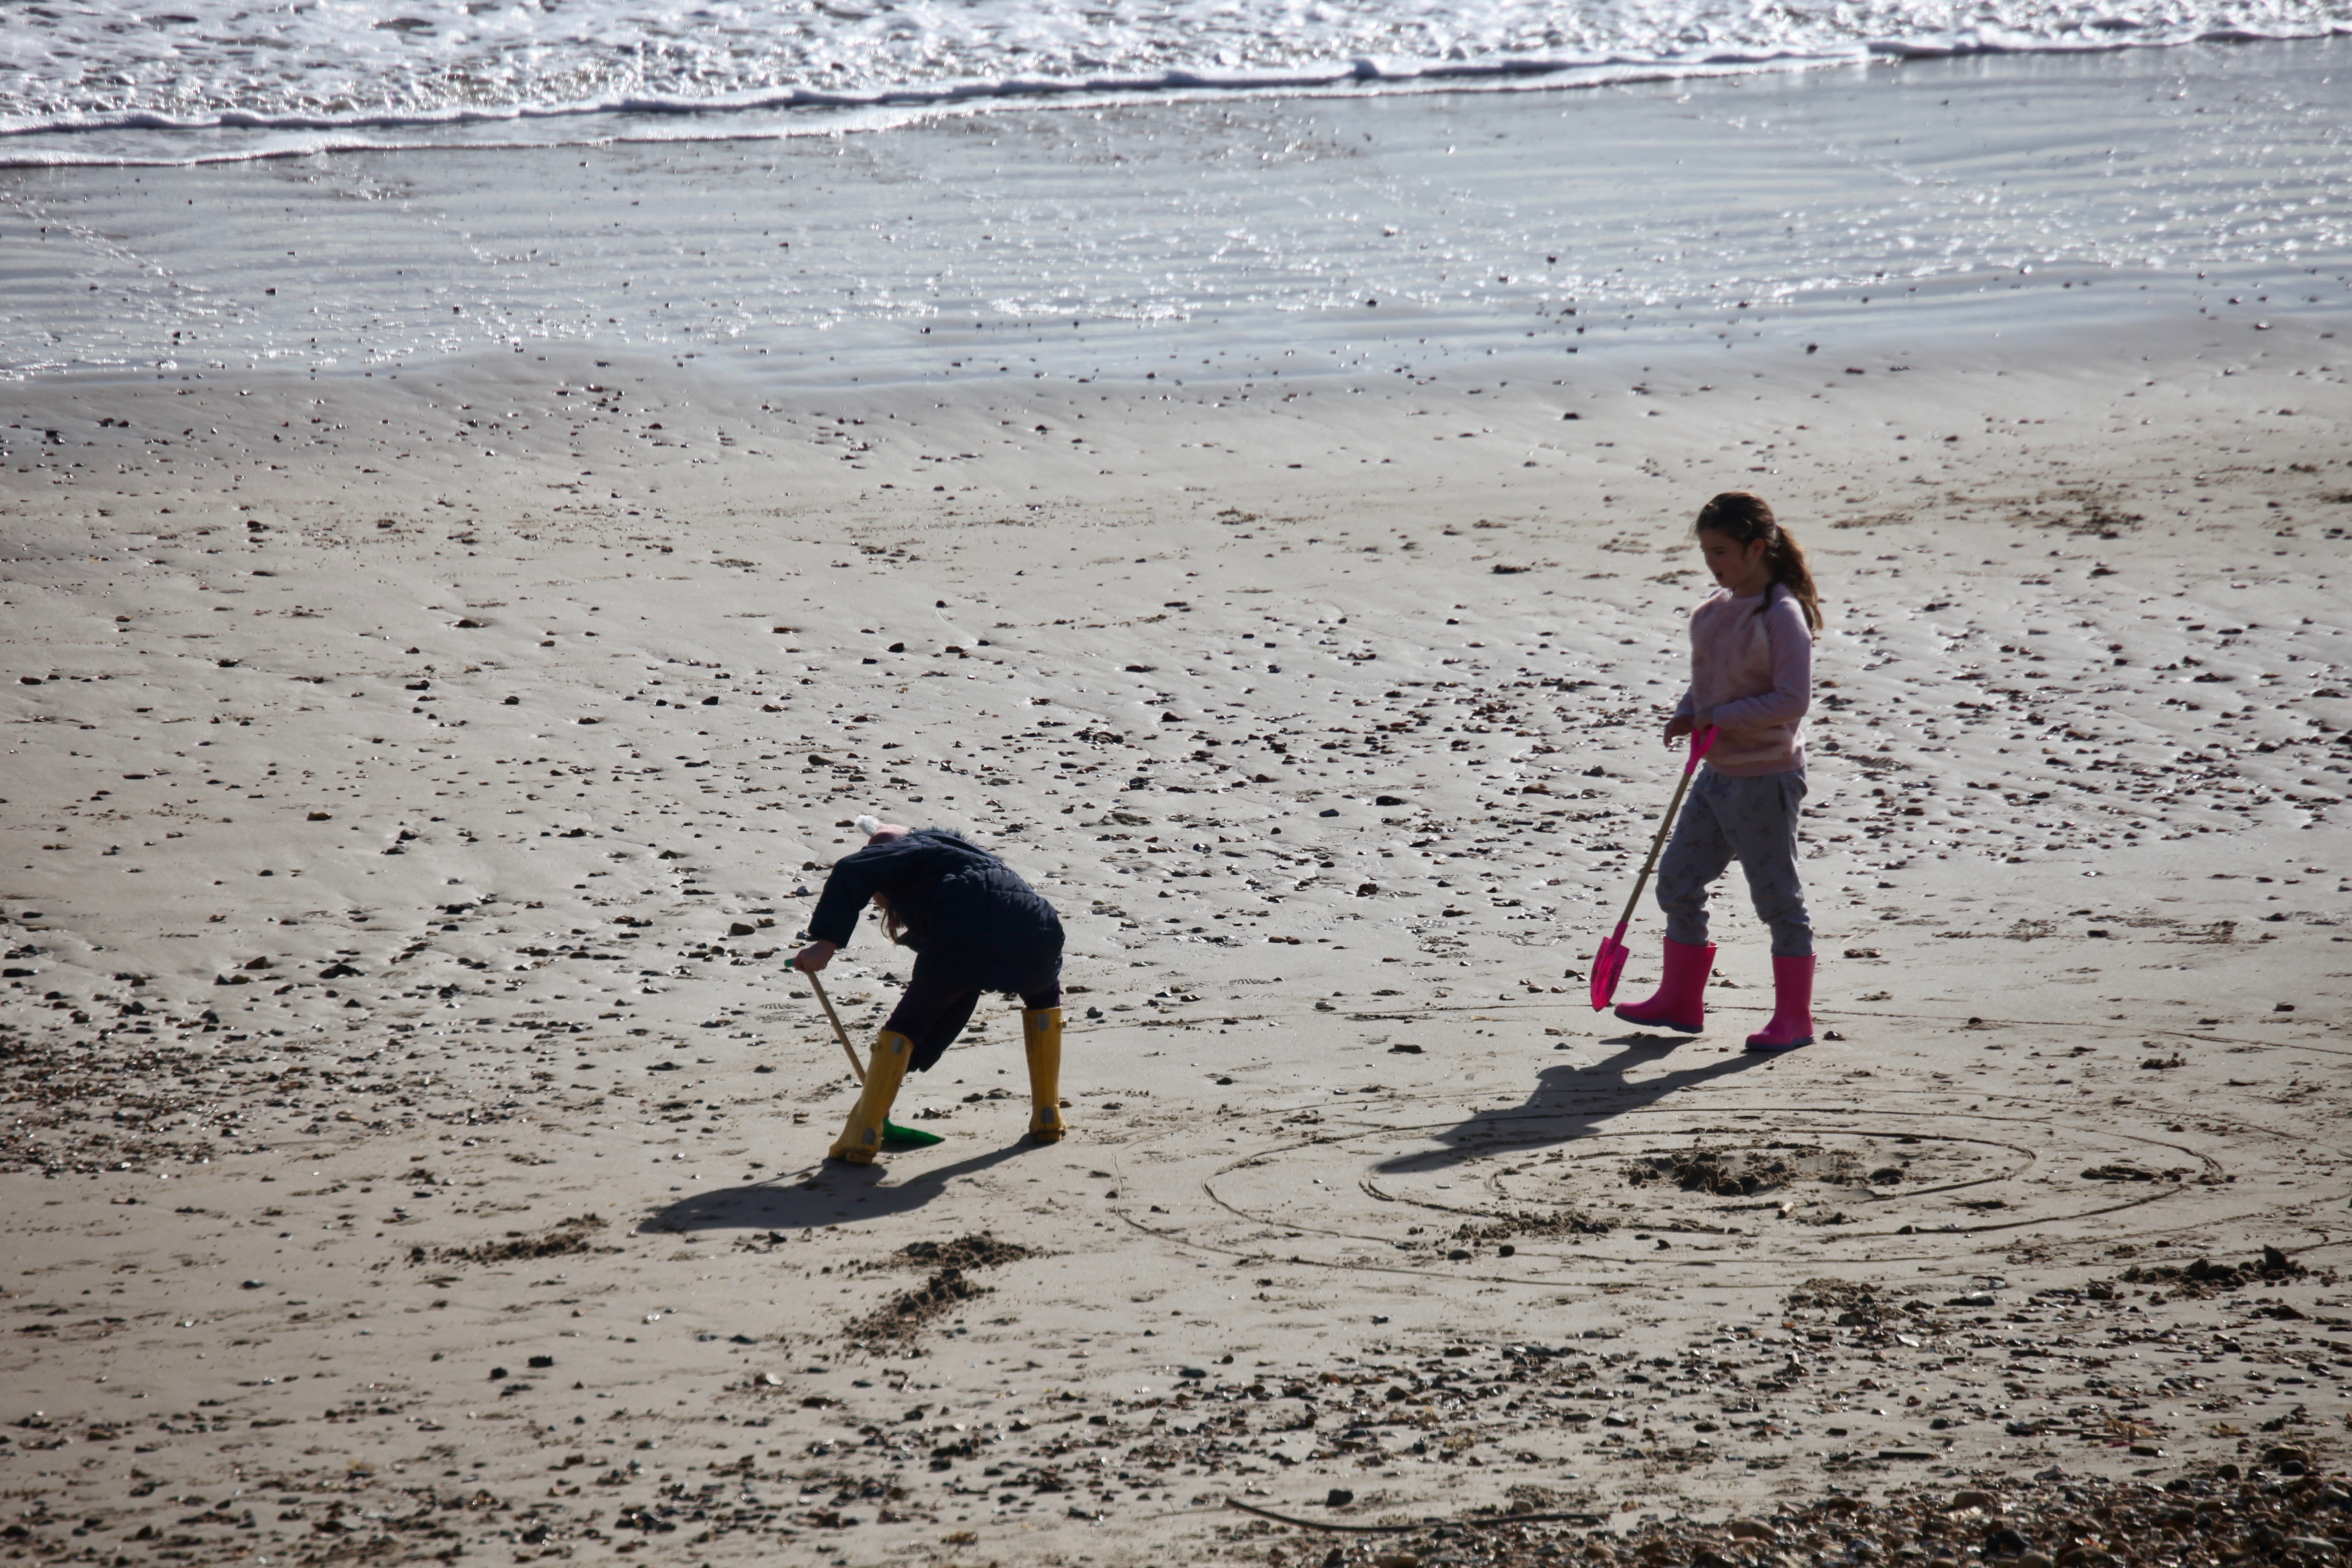 Children on beach 3